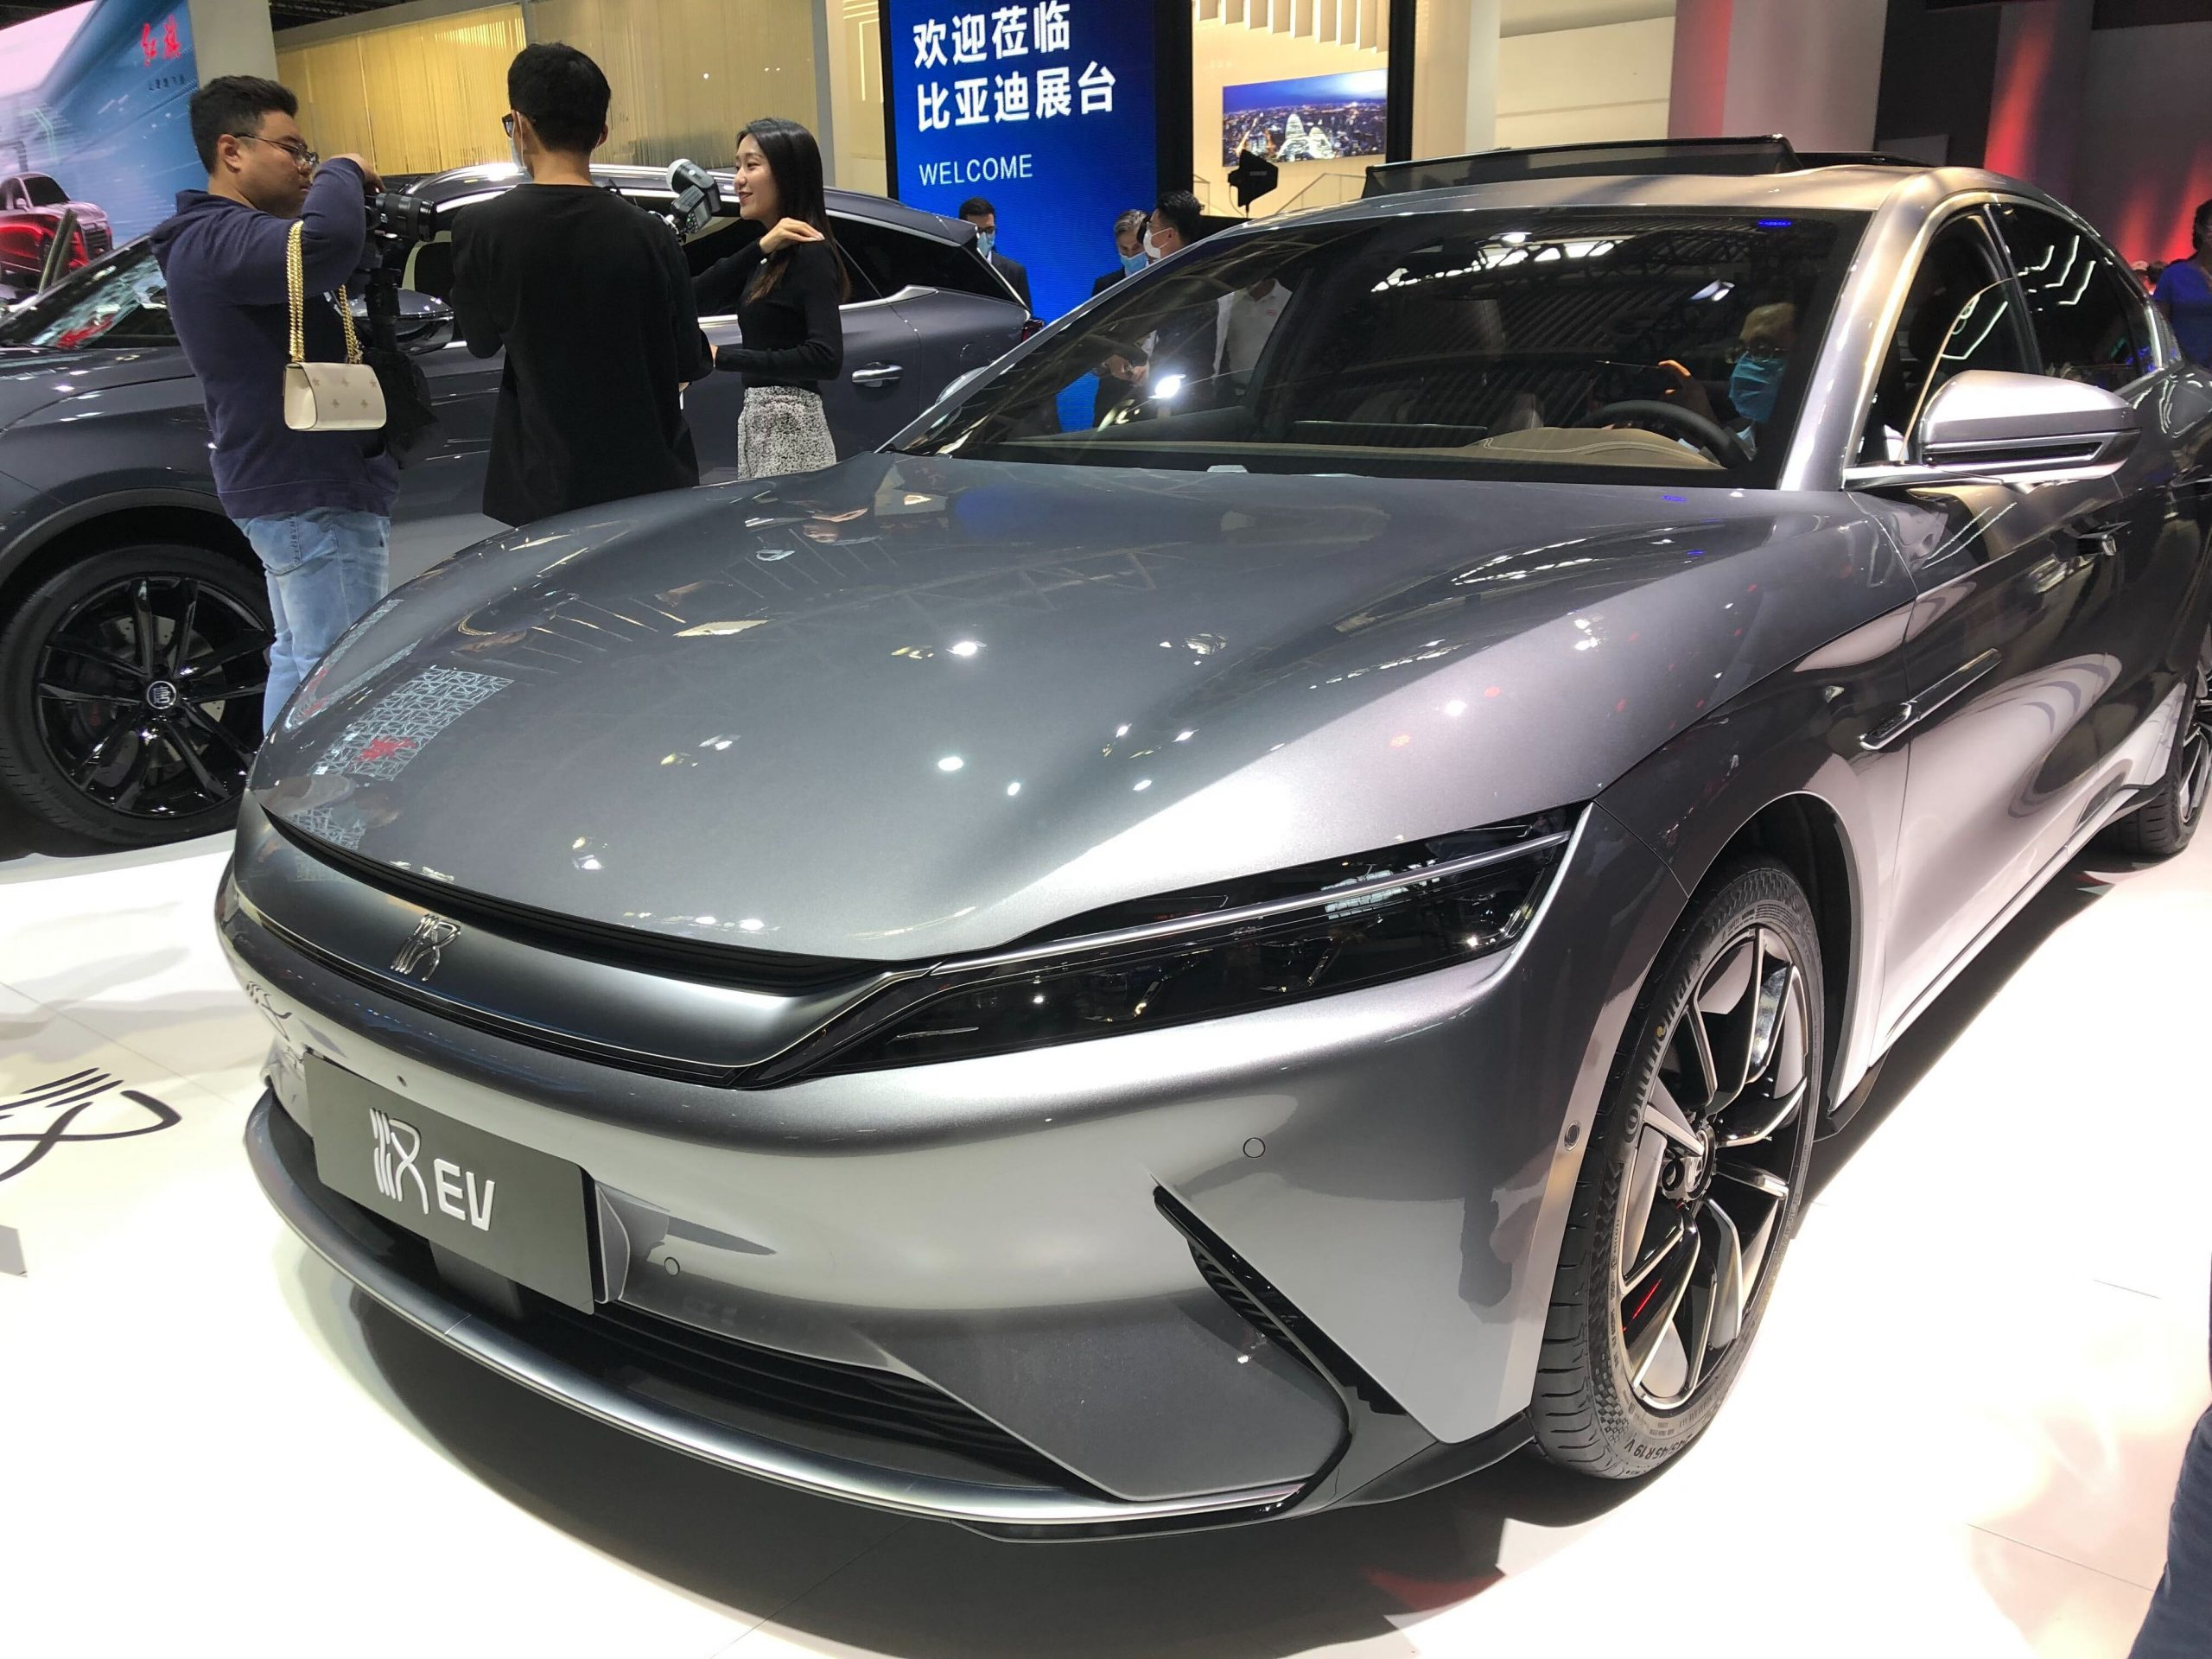 Warren Buffett-backed automaker sells more electric cars in March than Nio and Xpeng delivered